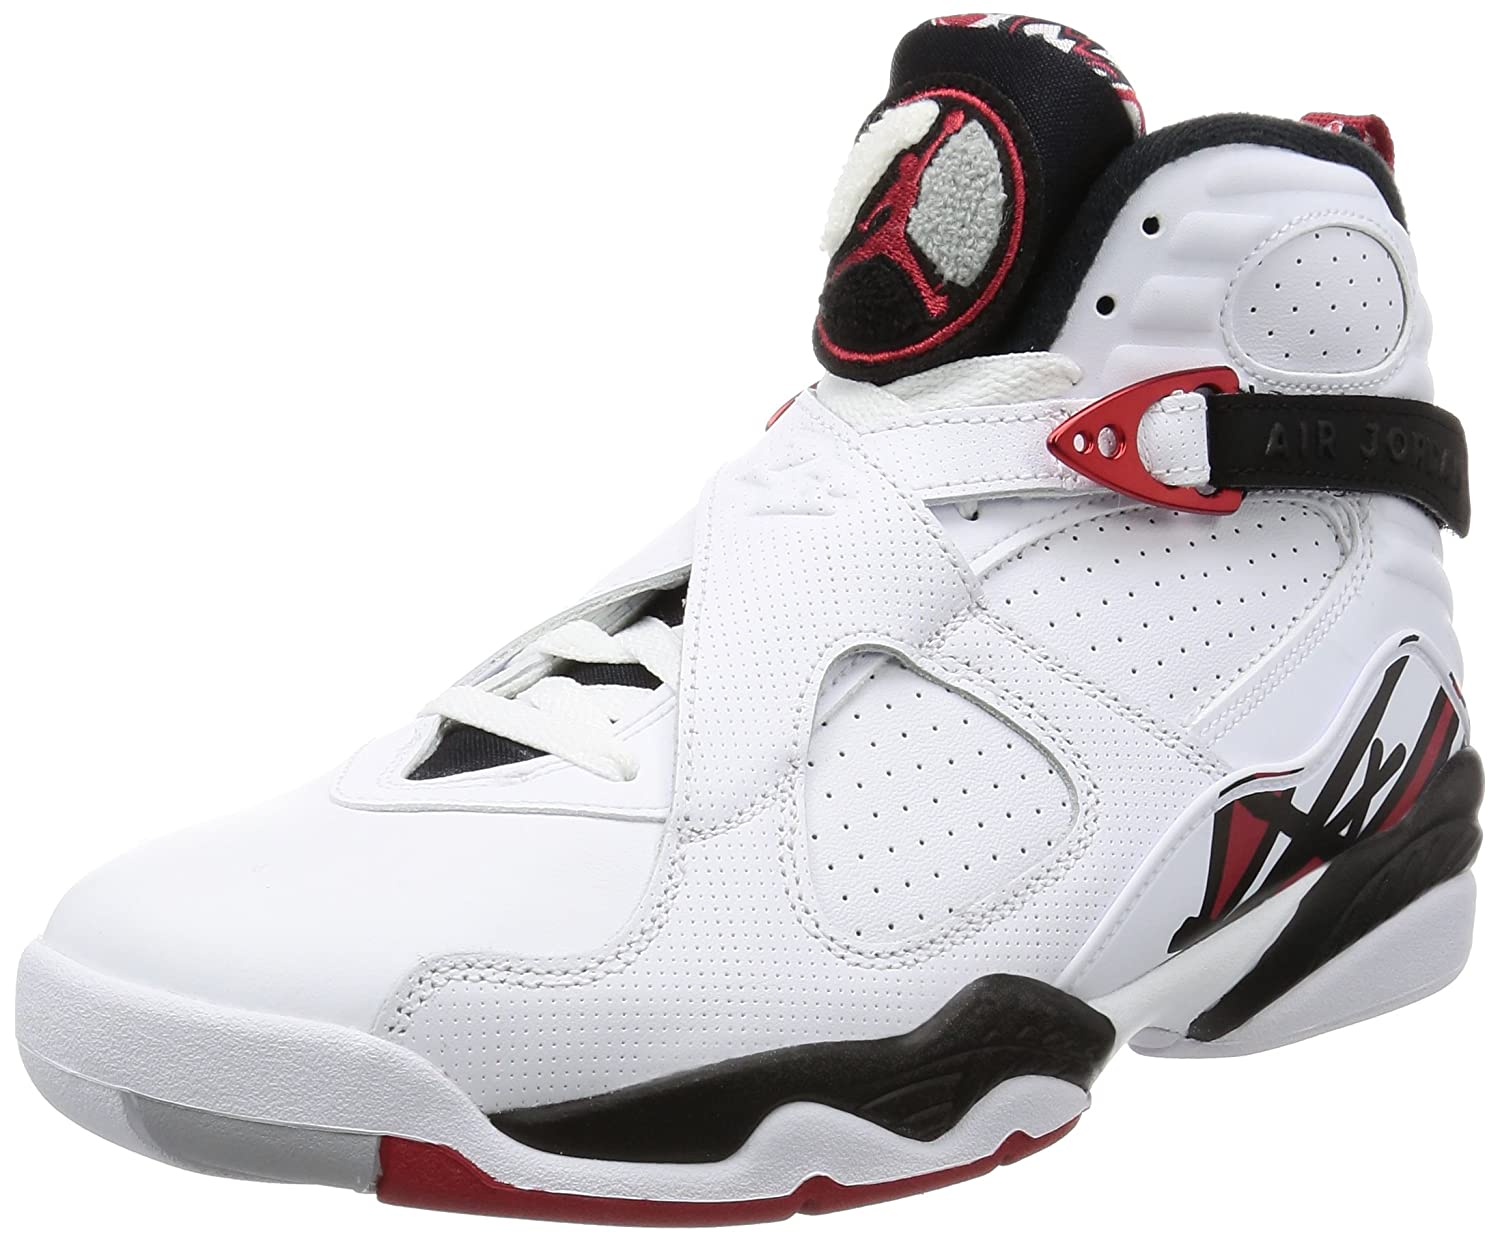 timeless design 2d491 c6d60 Amazon.com   AIR Jordan 8 Retro  Alternate  - 305381-104   Basketball